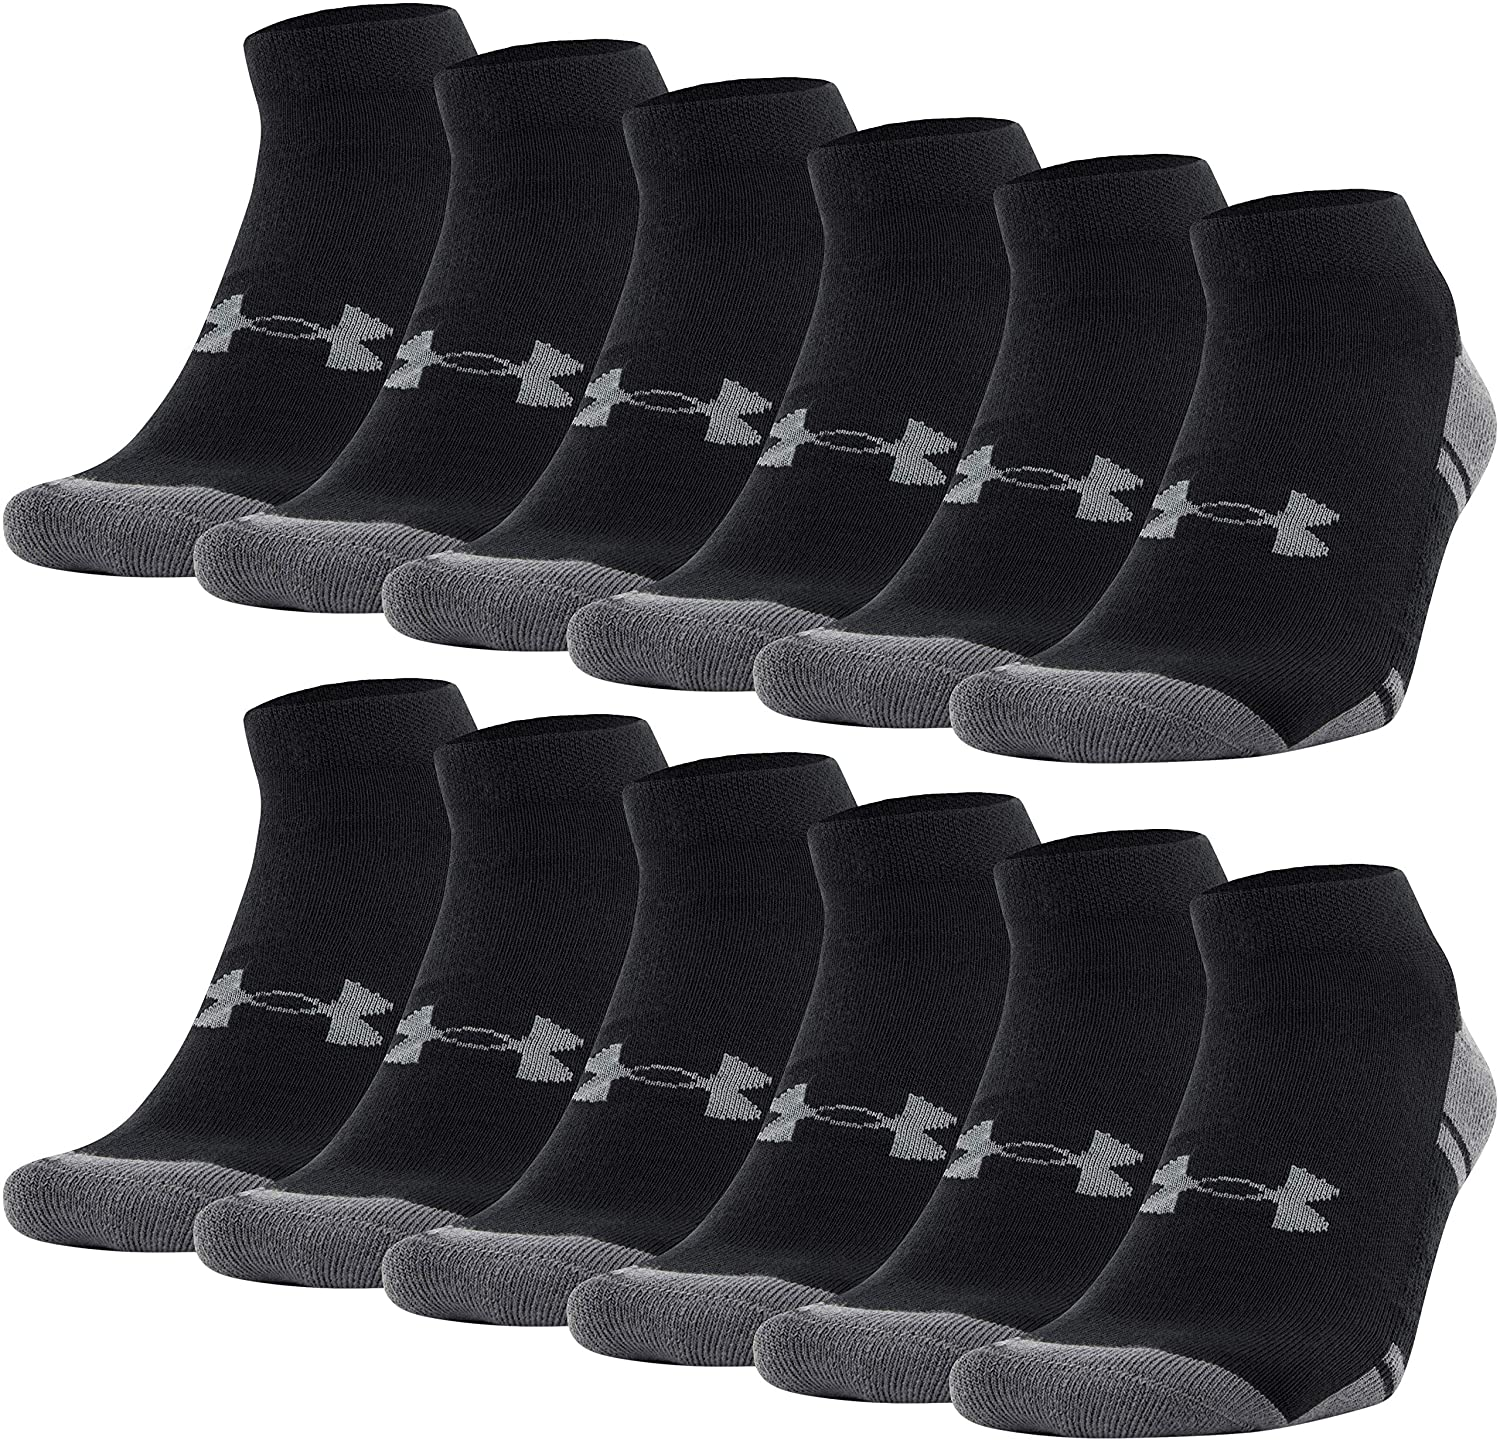 Under Armour UA Resistor III No Show Socks Pack of 6 Size M-L-XL